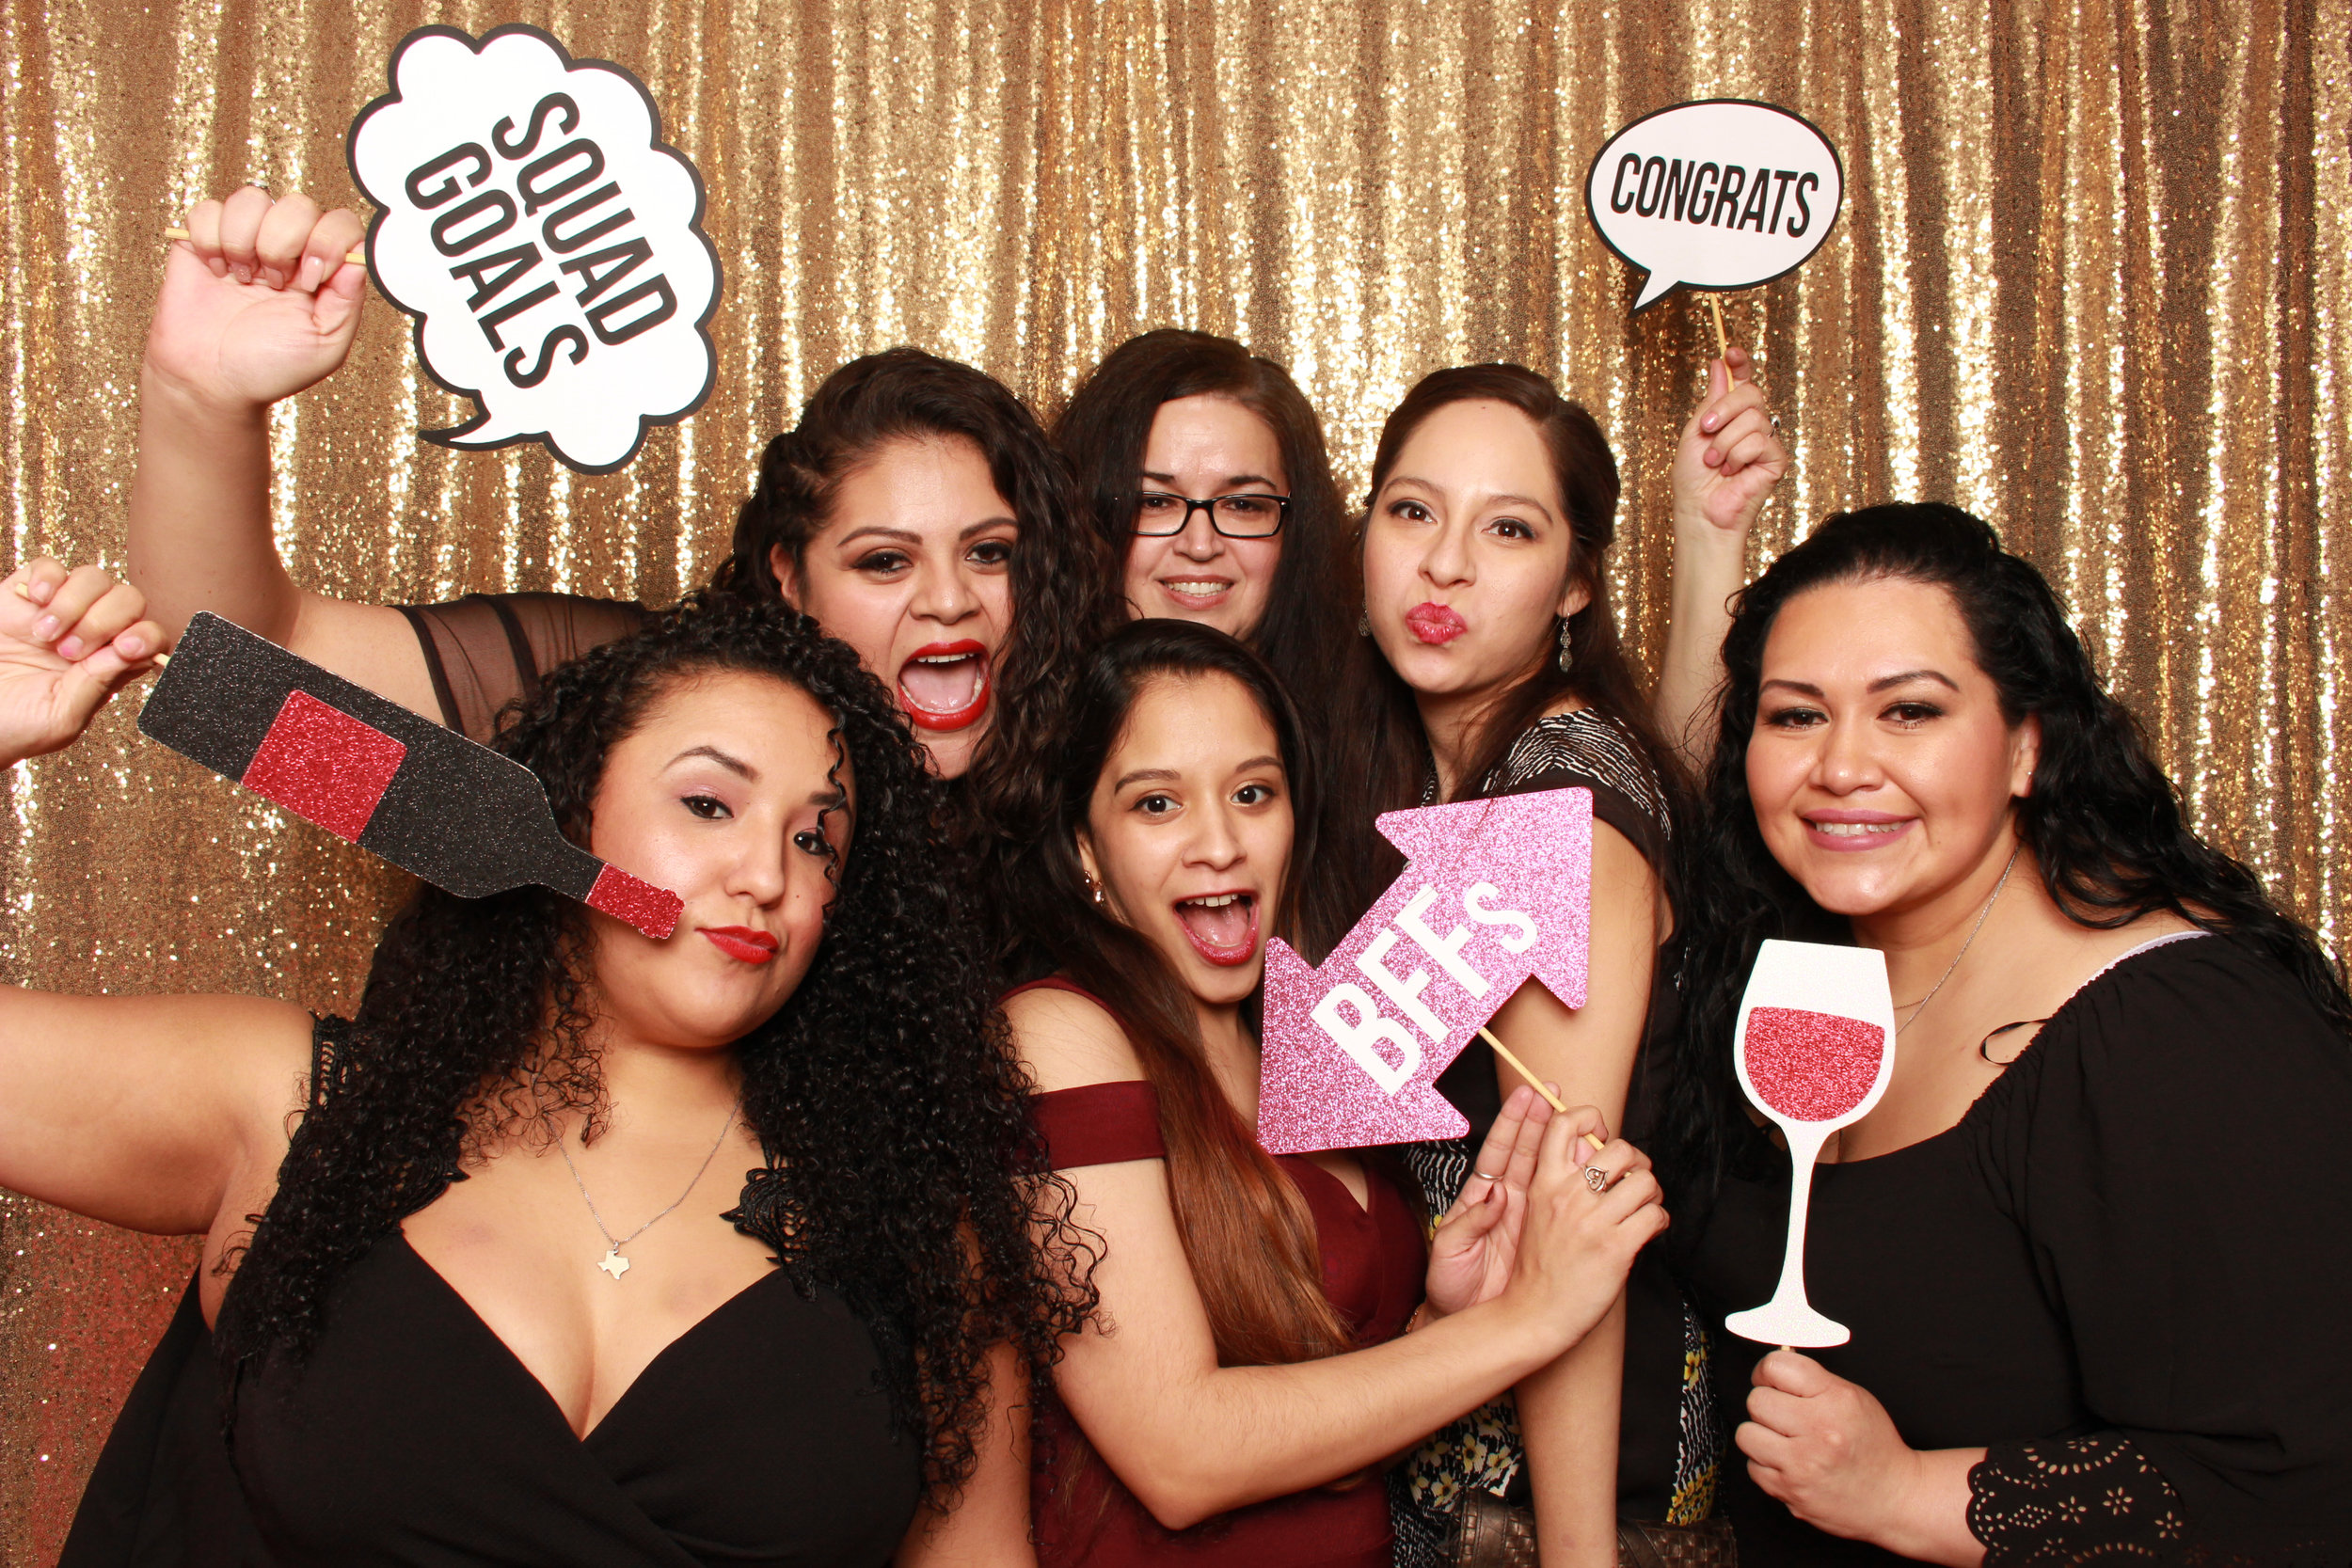 austin photo booth rental - Oh Happy Day Booth-52.jpg